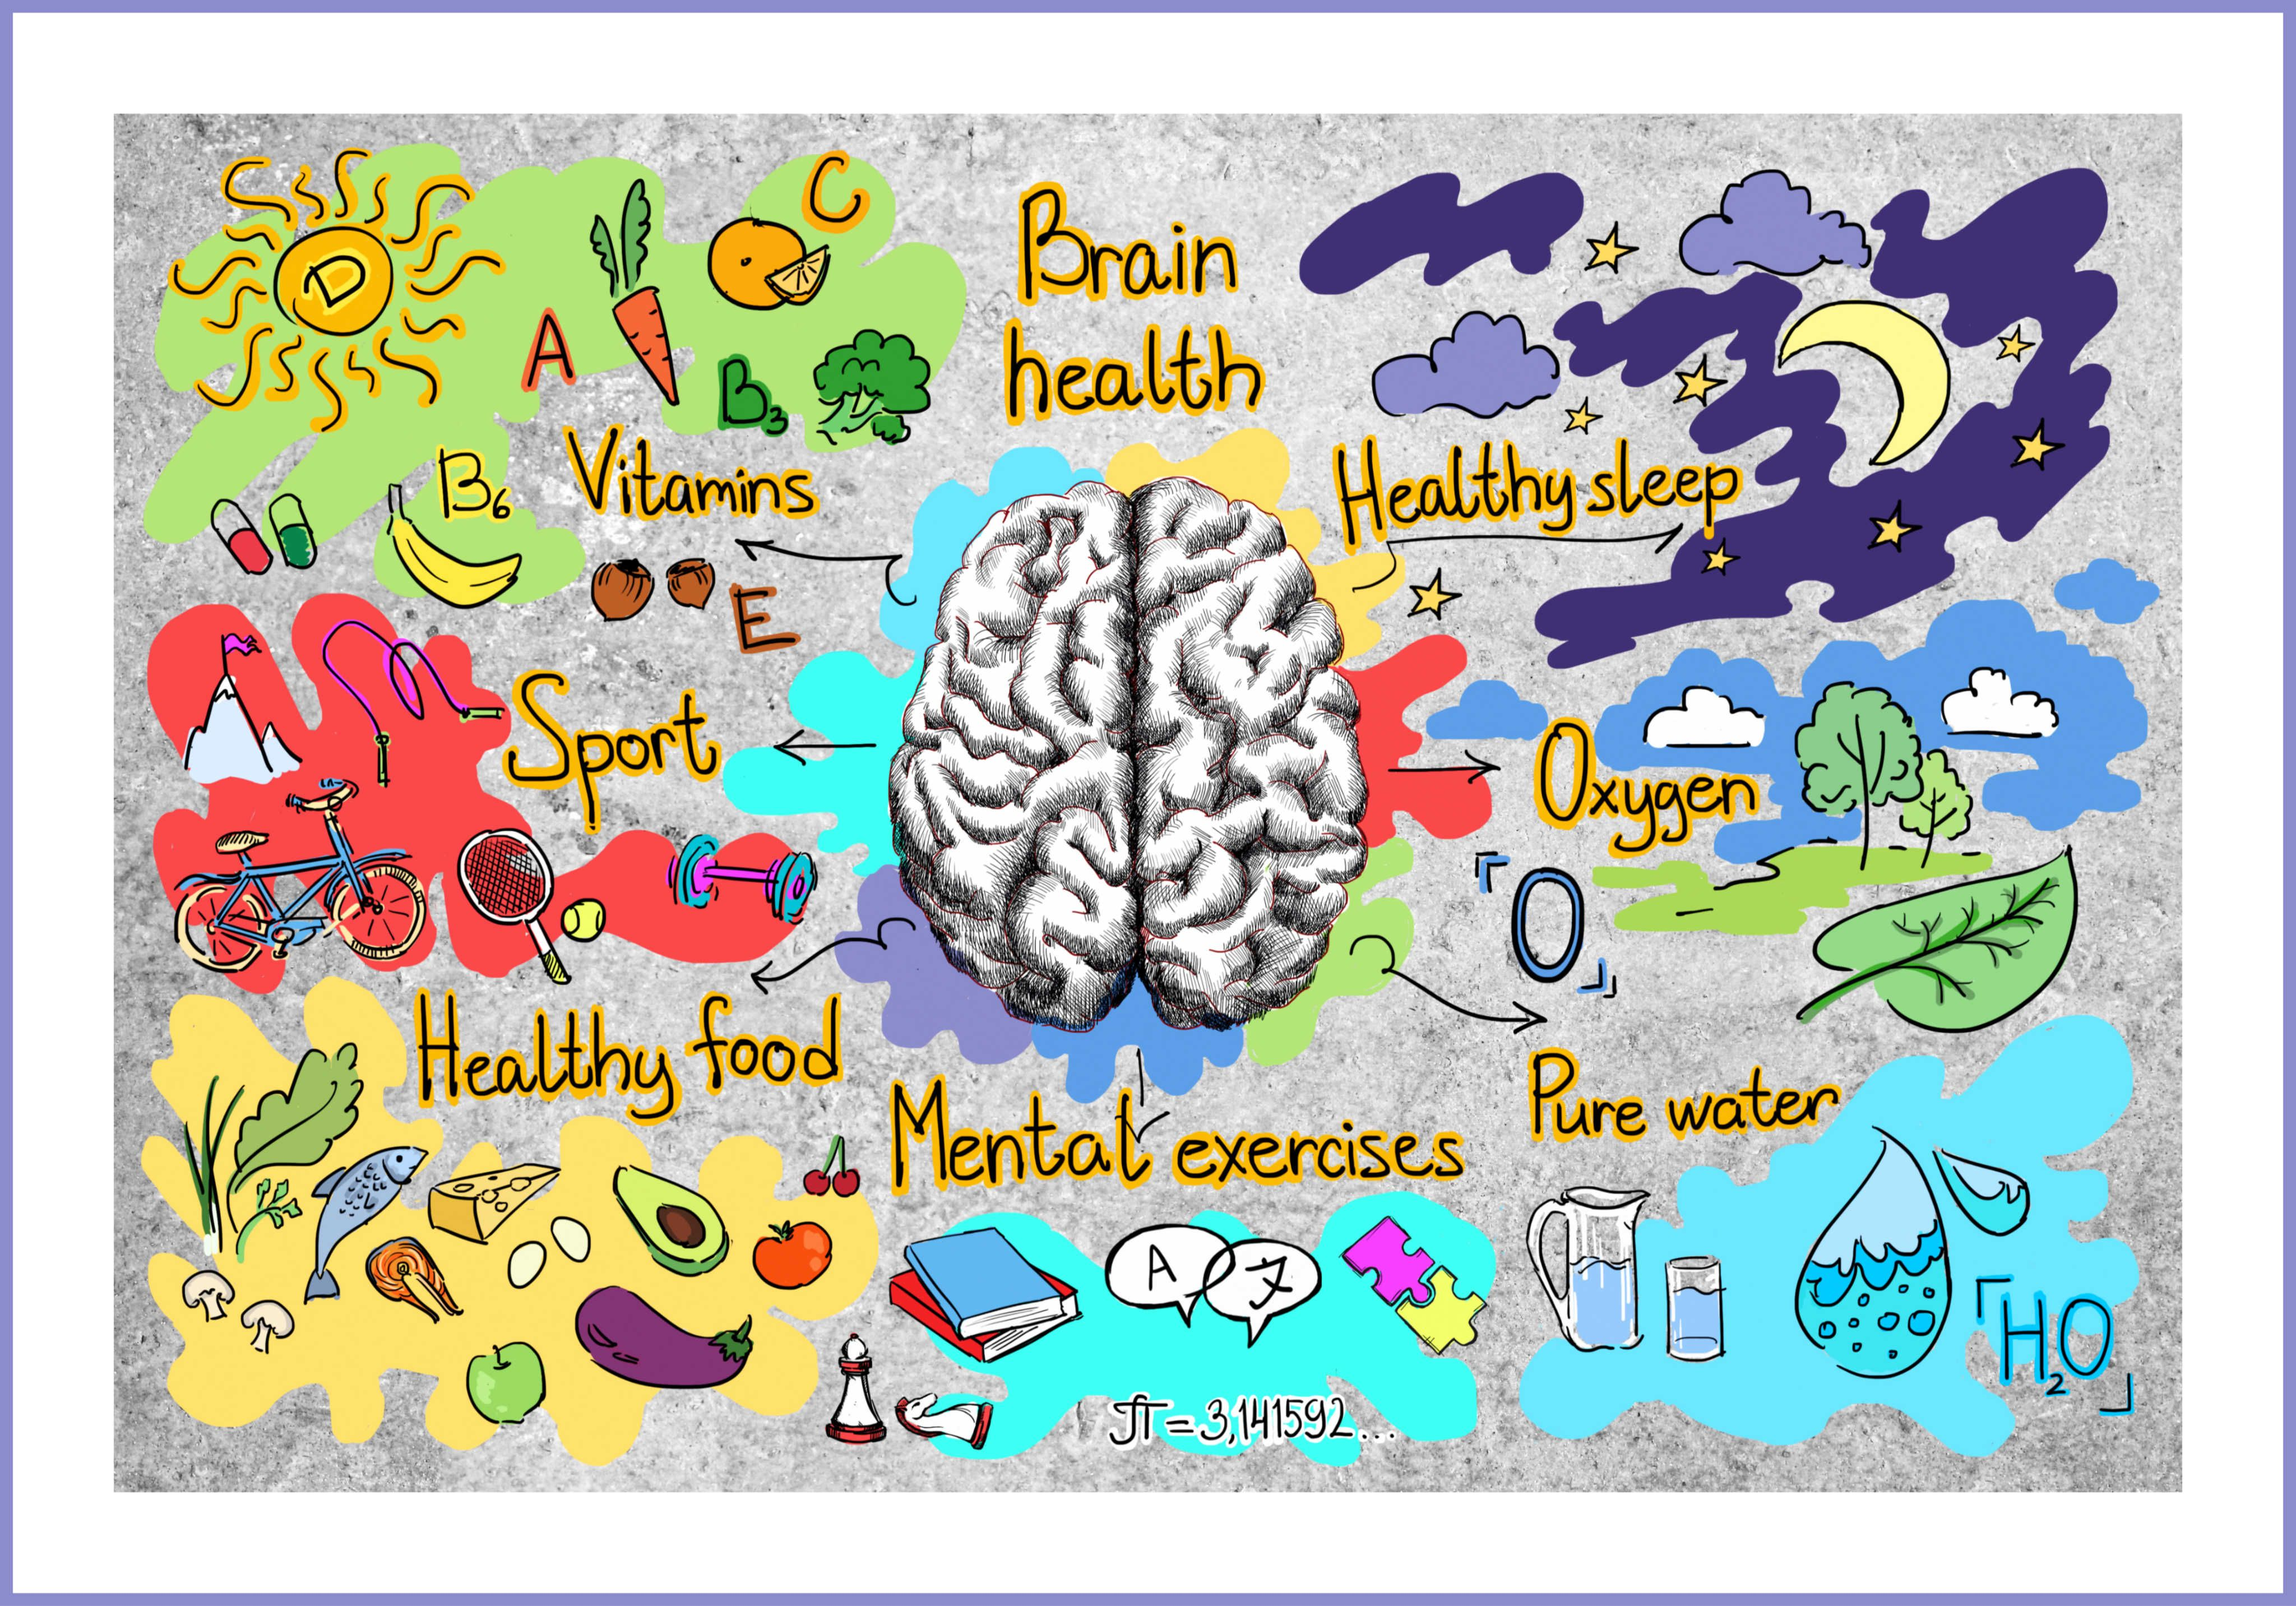 We All Have Those Days Or Even Weeks Months Where We Are Operating On Total Overload Our Brain Feels The W Brain Health Brain Boosting Foods Best Brains